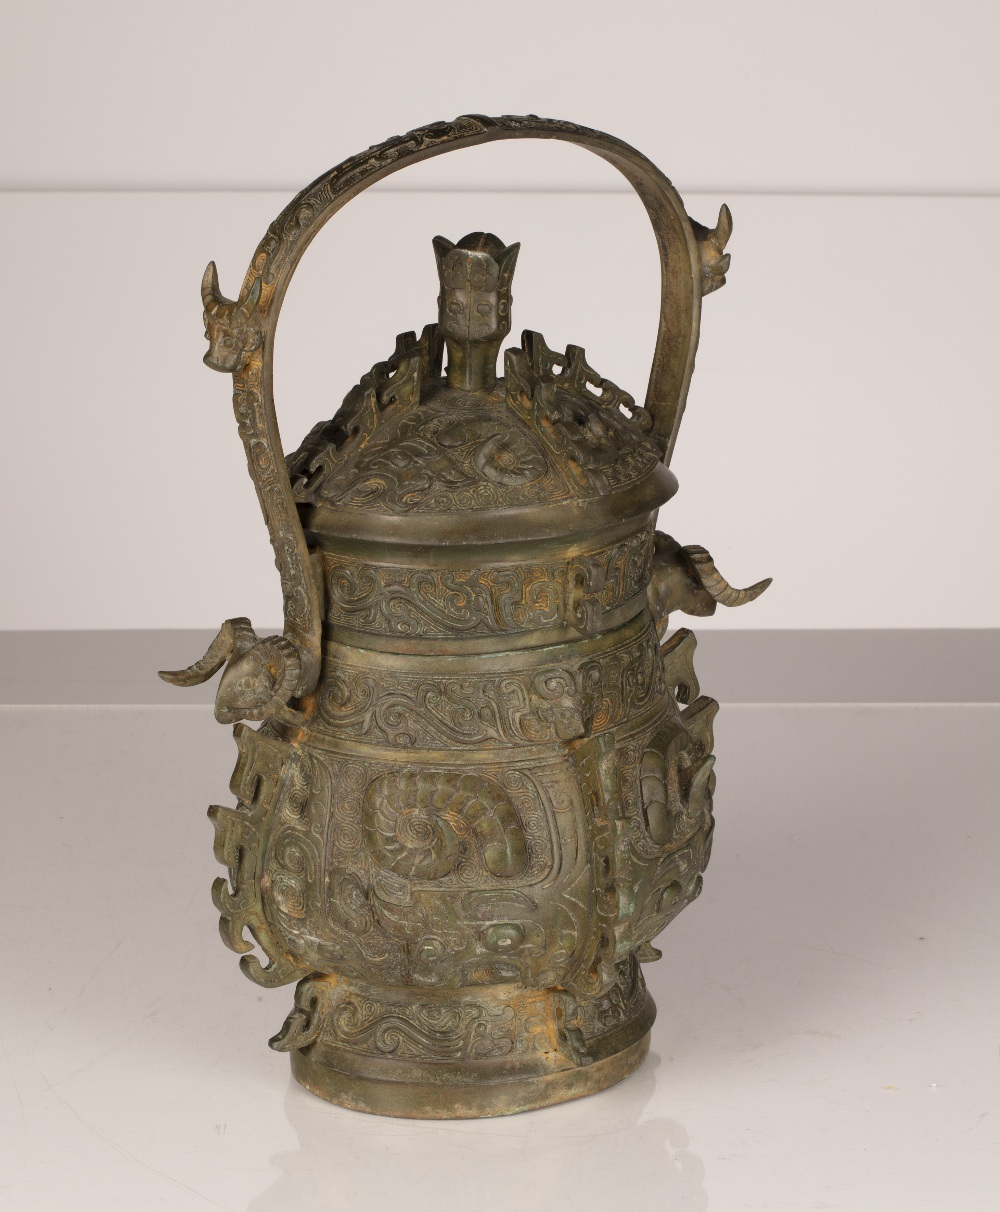 Bronze Shang dynasty style vessel (you) Chinese with loop handle and cover, 33cm high Ex Desmond - Image 3 of 4